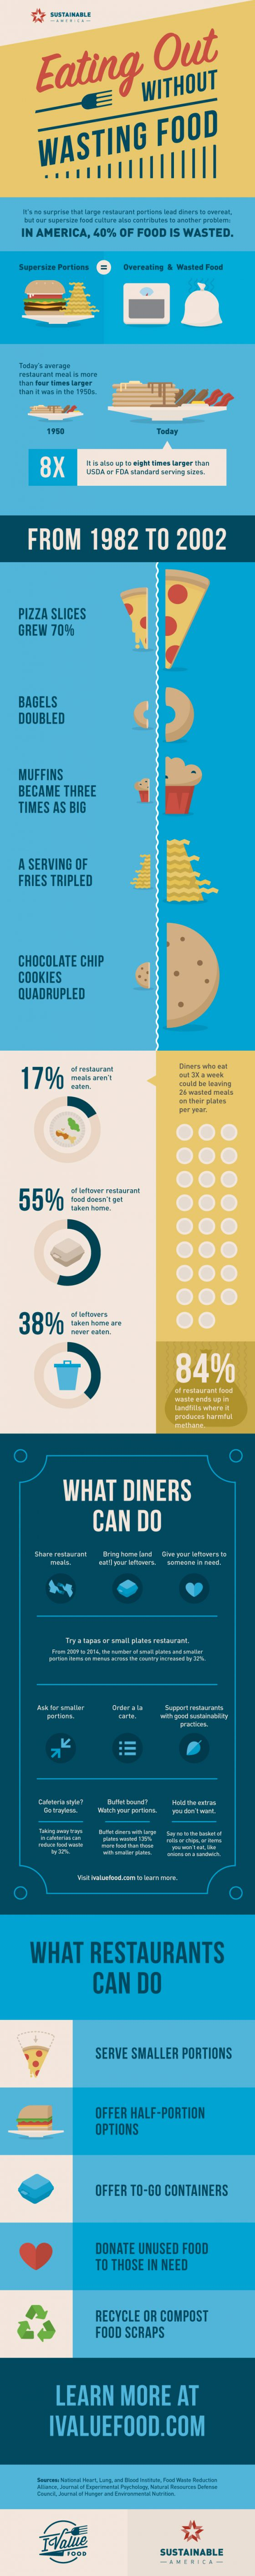 Eating Out Without Wasting Food Infographic